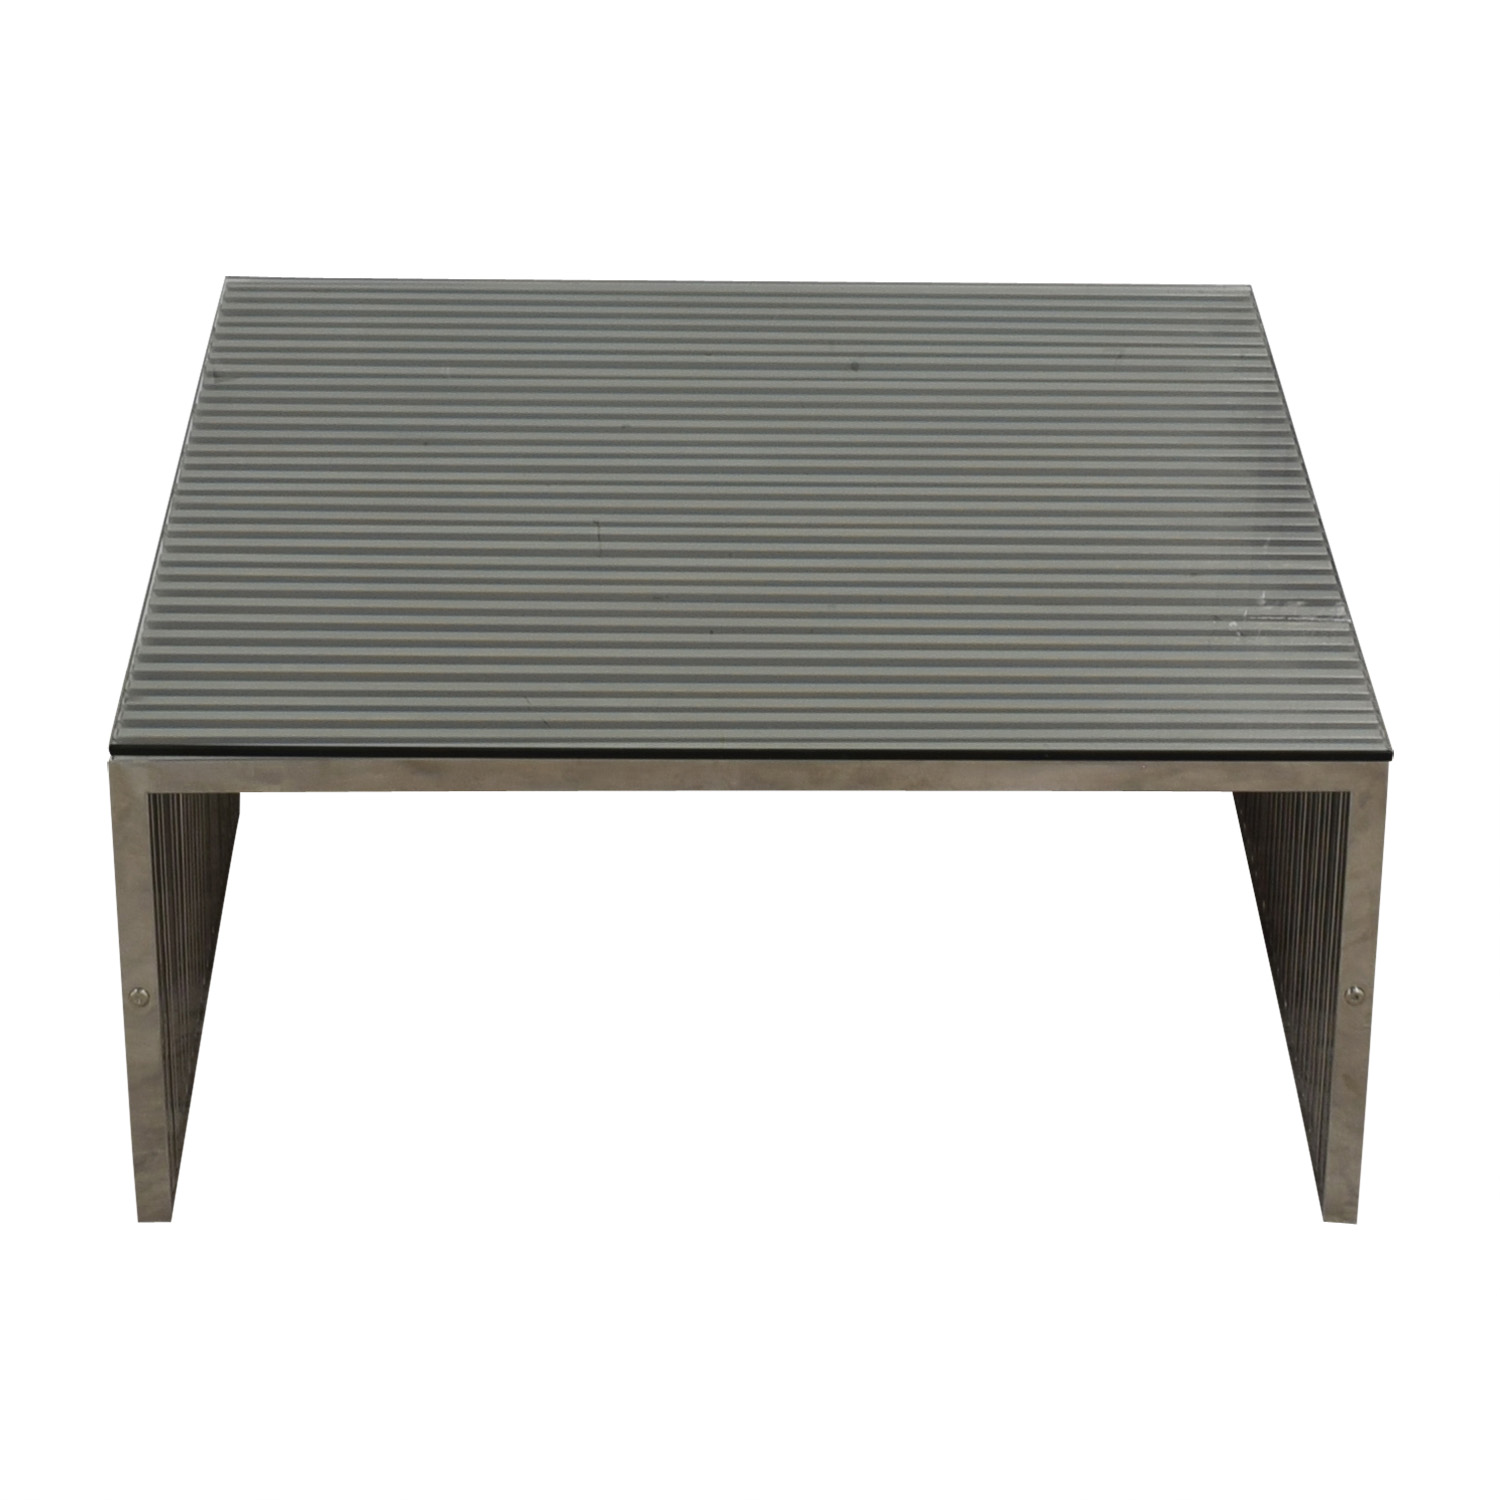 buy Gridiron Coffee Table in Stainless Steel with Glass Top Modway Coffee Tables